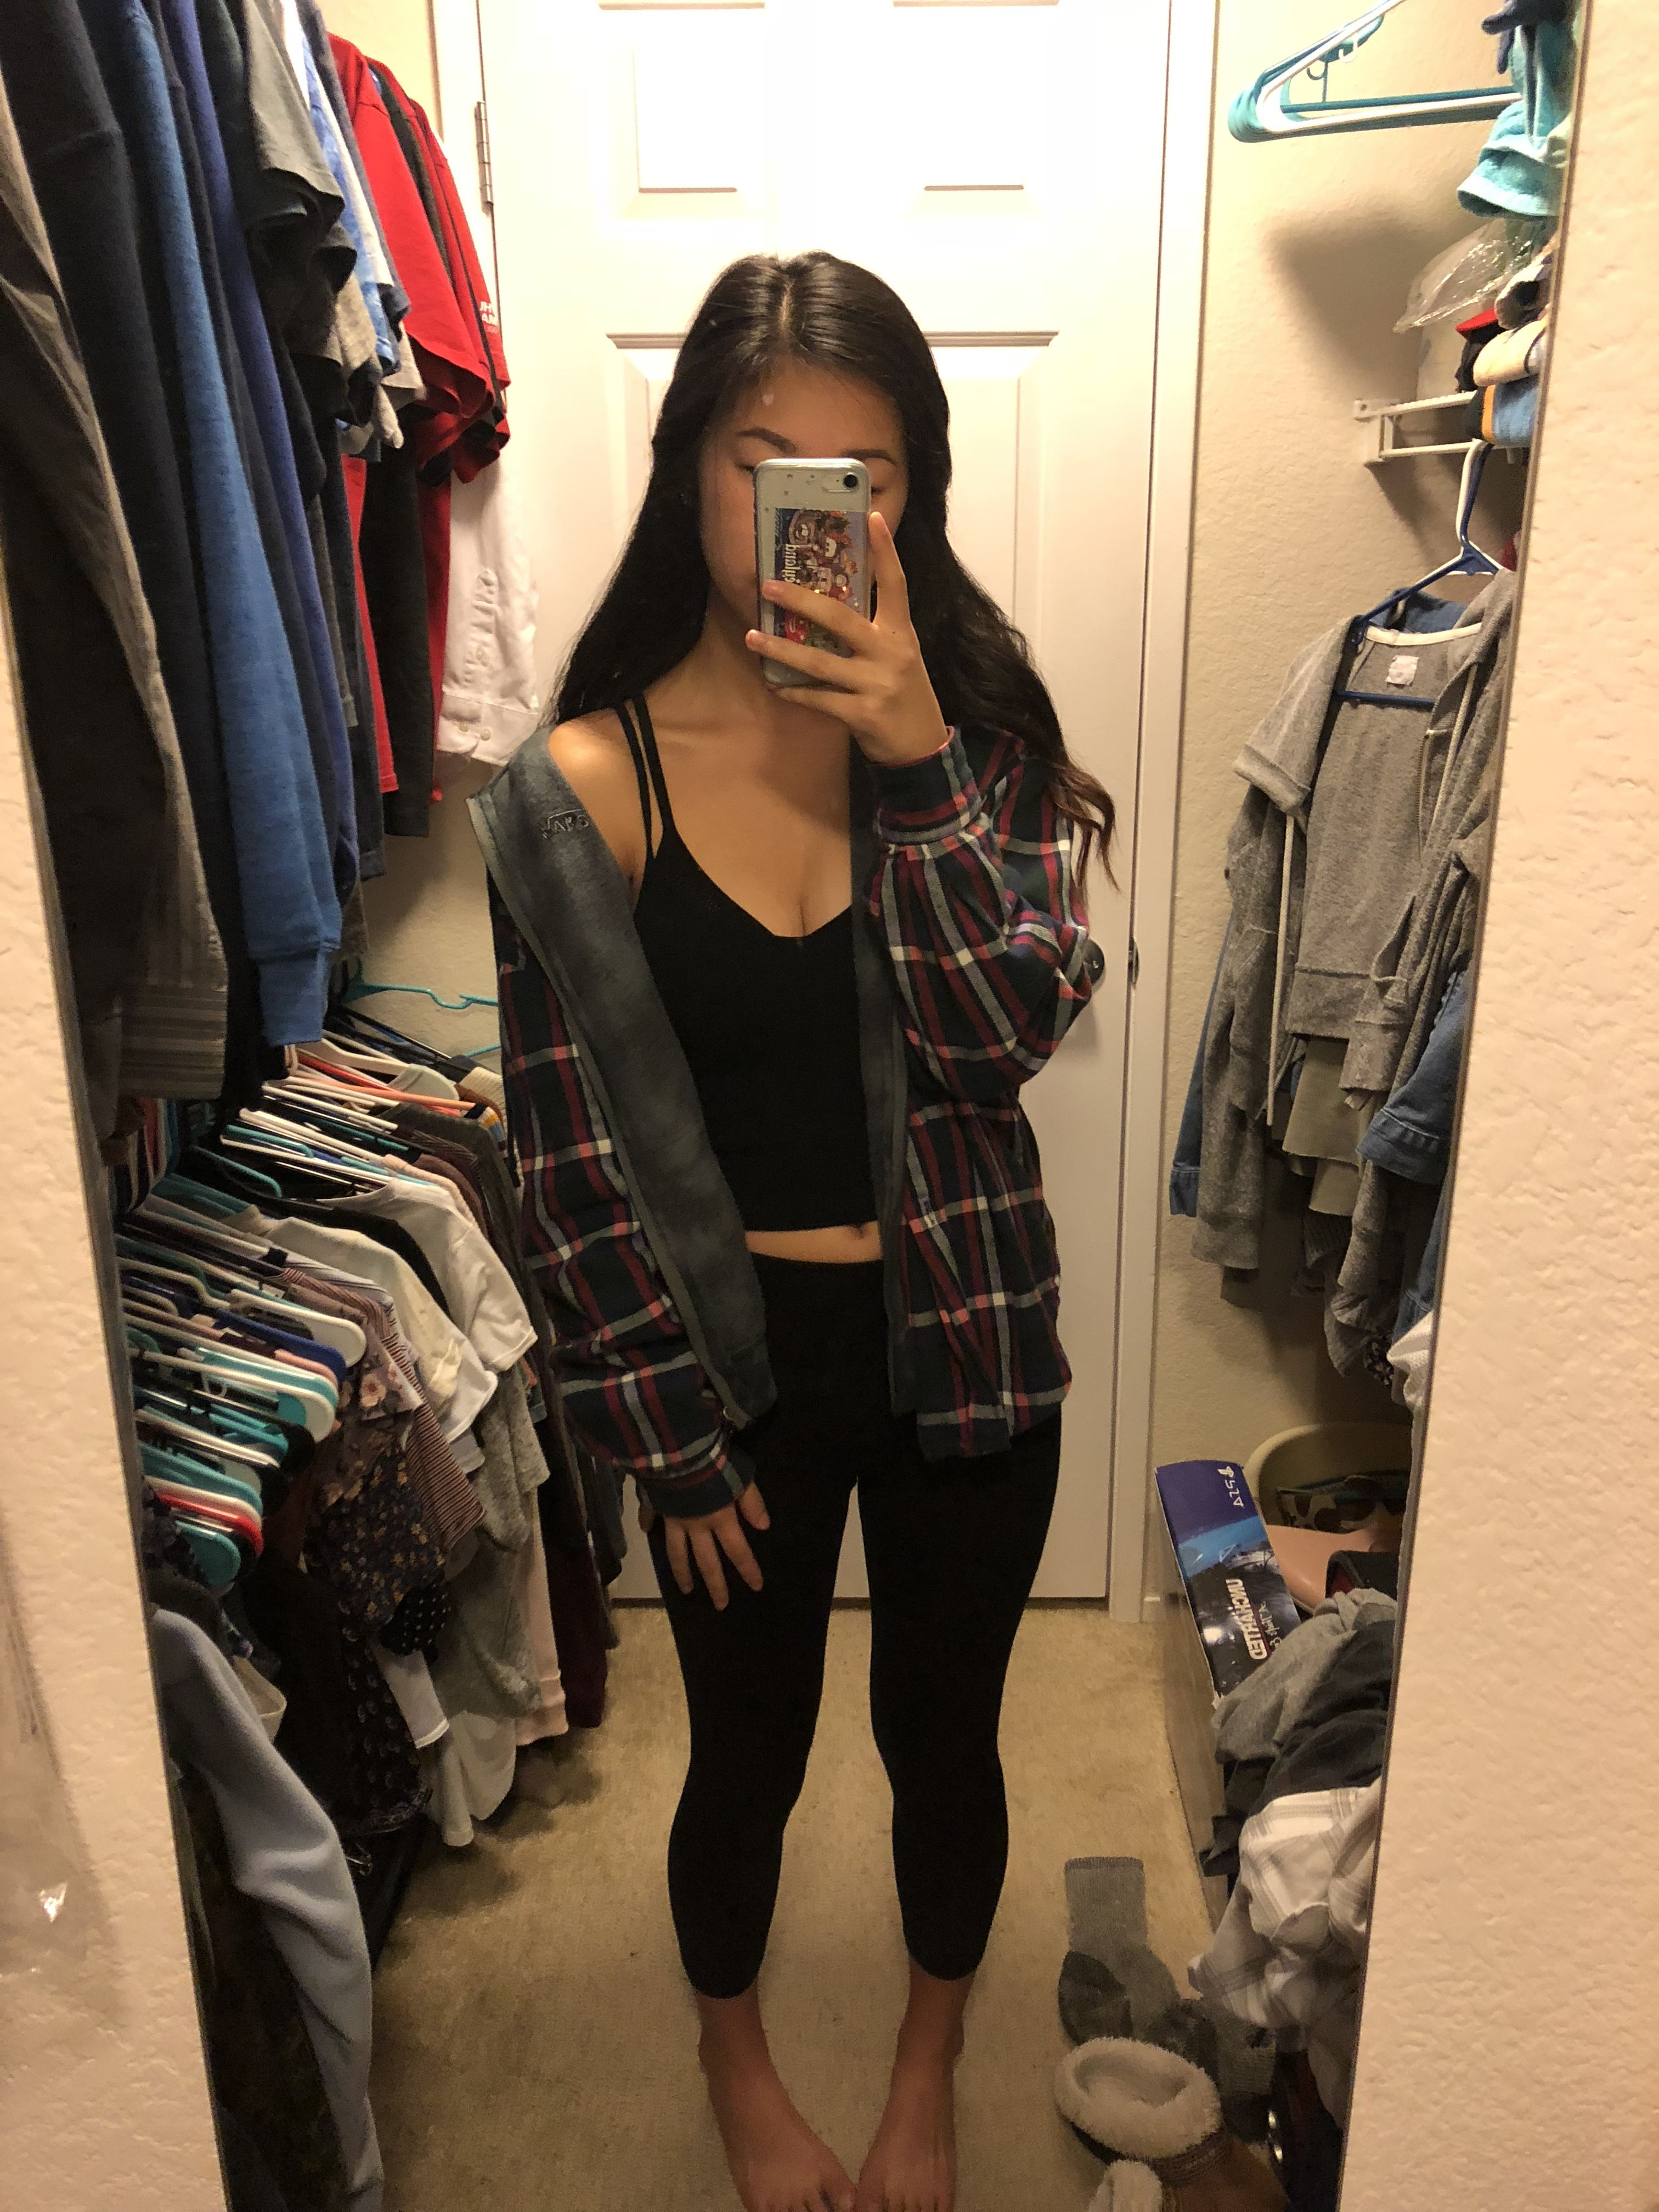 All Black Leggings And Tank Top Layered With A Band Hoodie And An Oversized Flannel Cute Outfits With Leggings Black Leggings Outfit Flannel And Leggings [ 4032 x 3024 Pixel ]